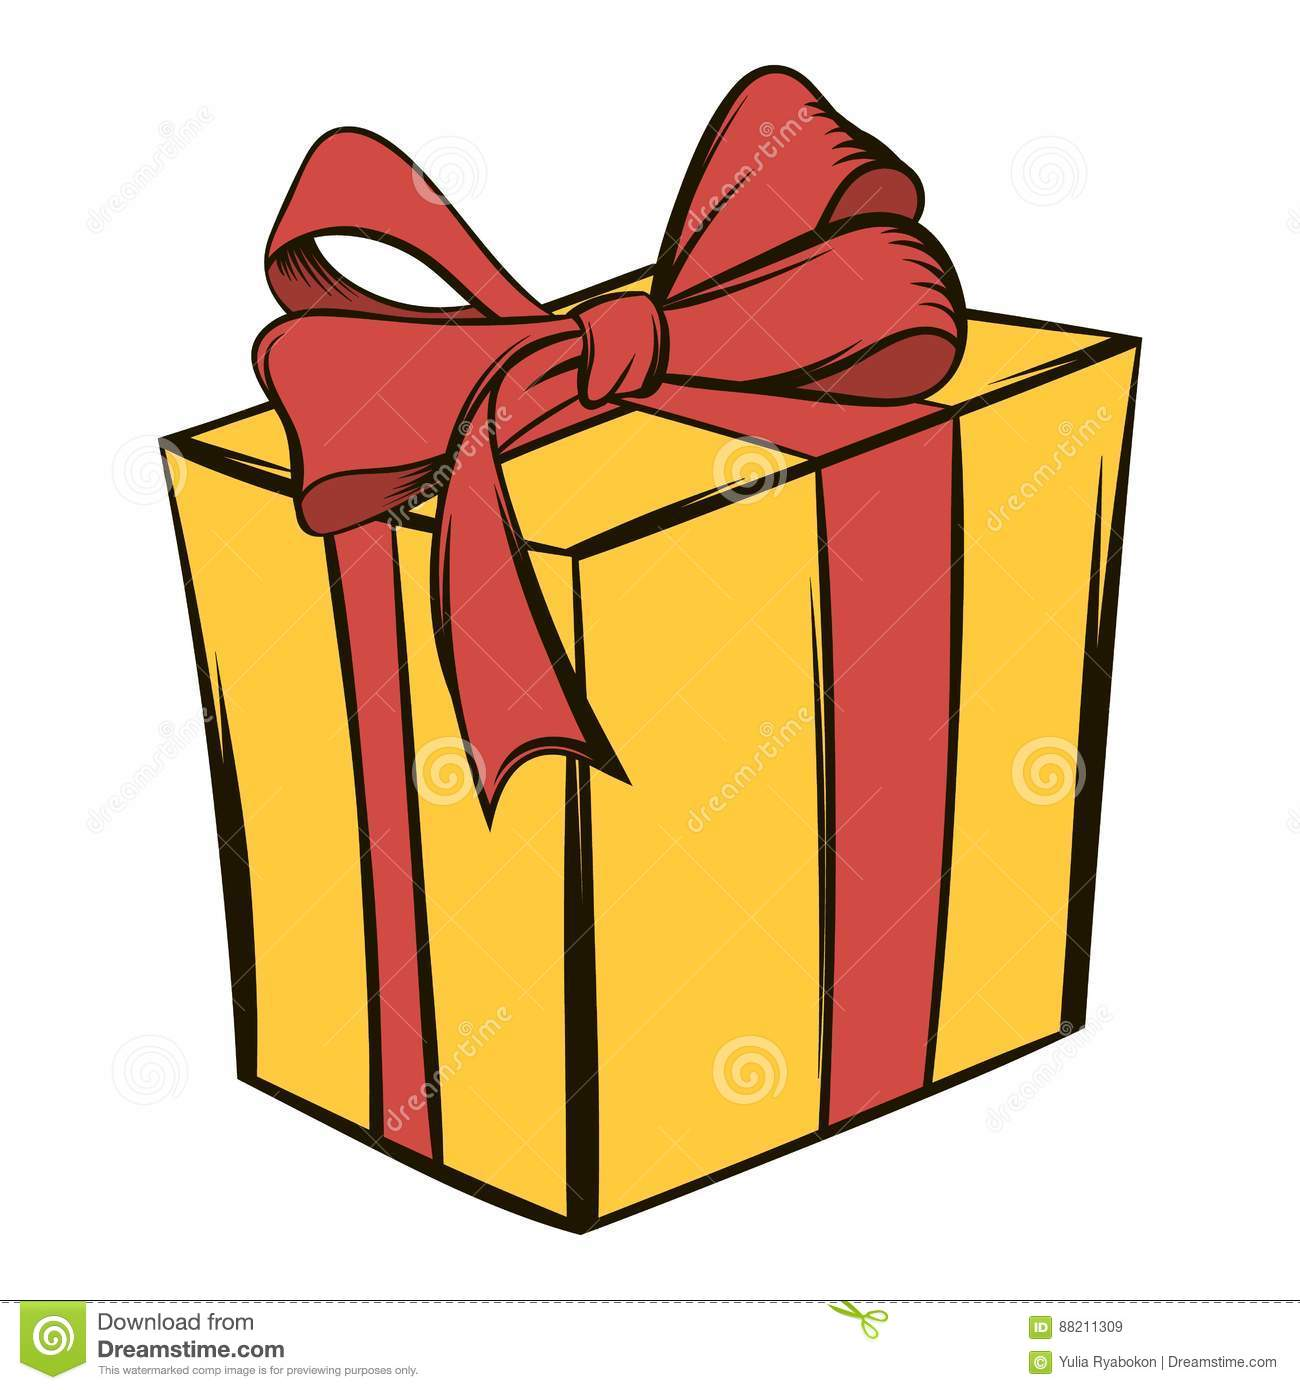 Yellow gift box with a red ribbon icon cartoon stock